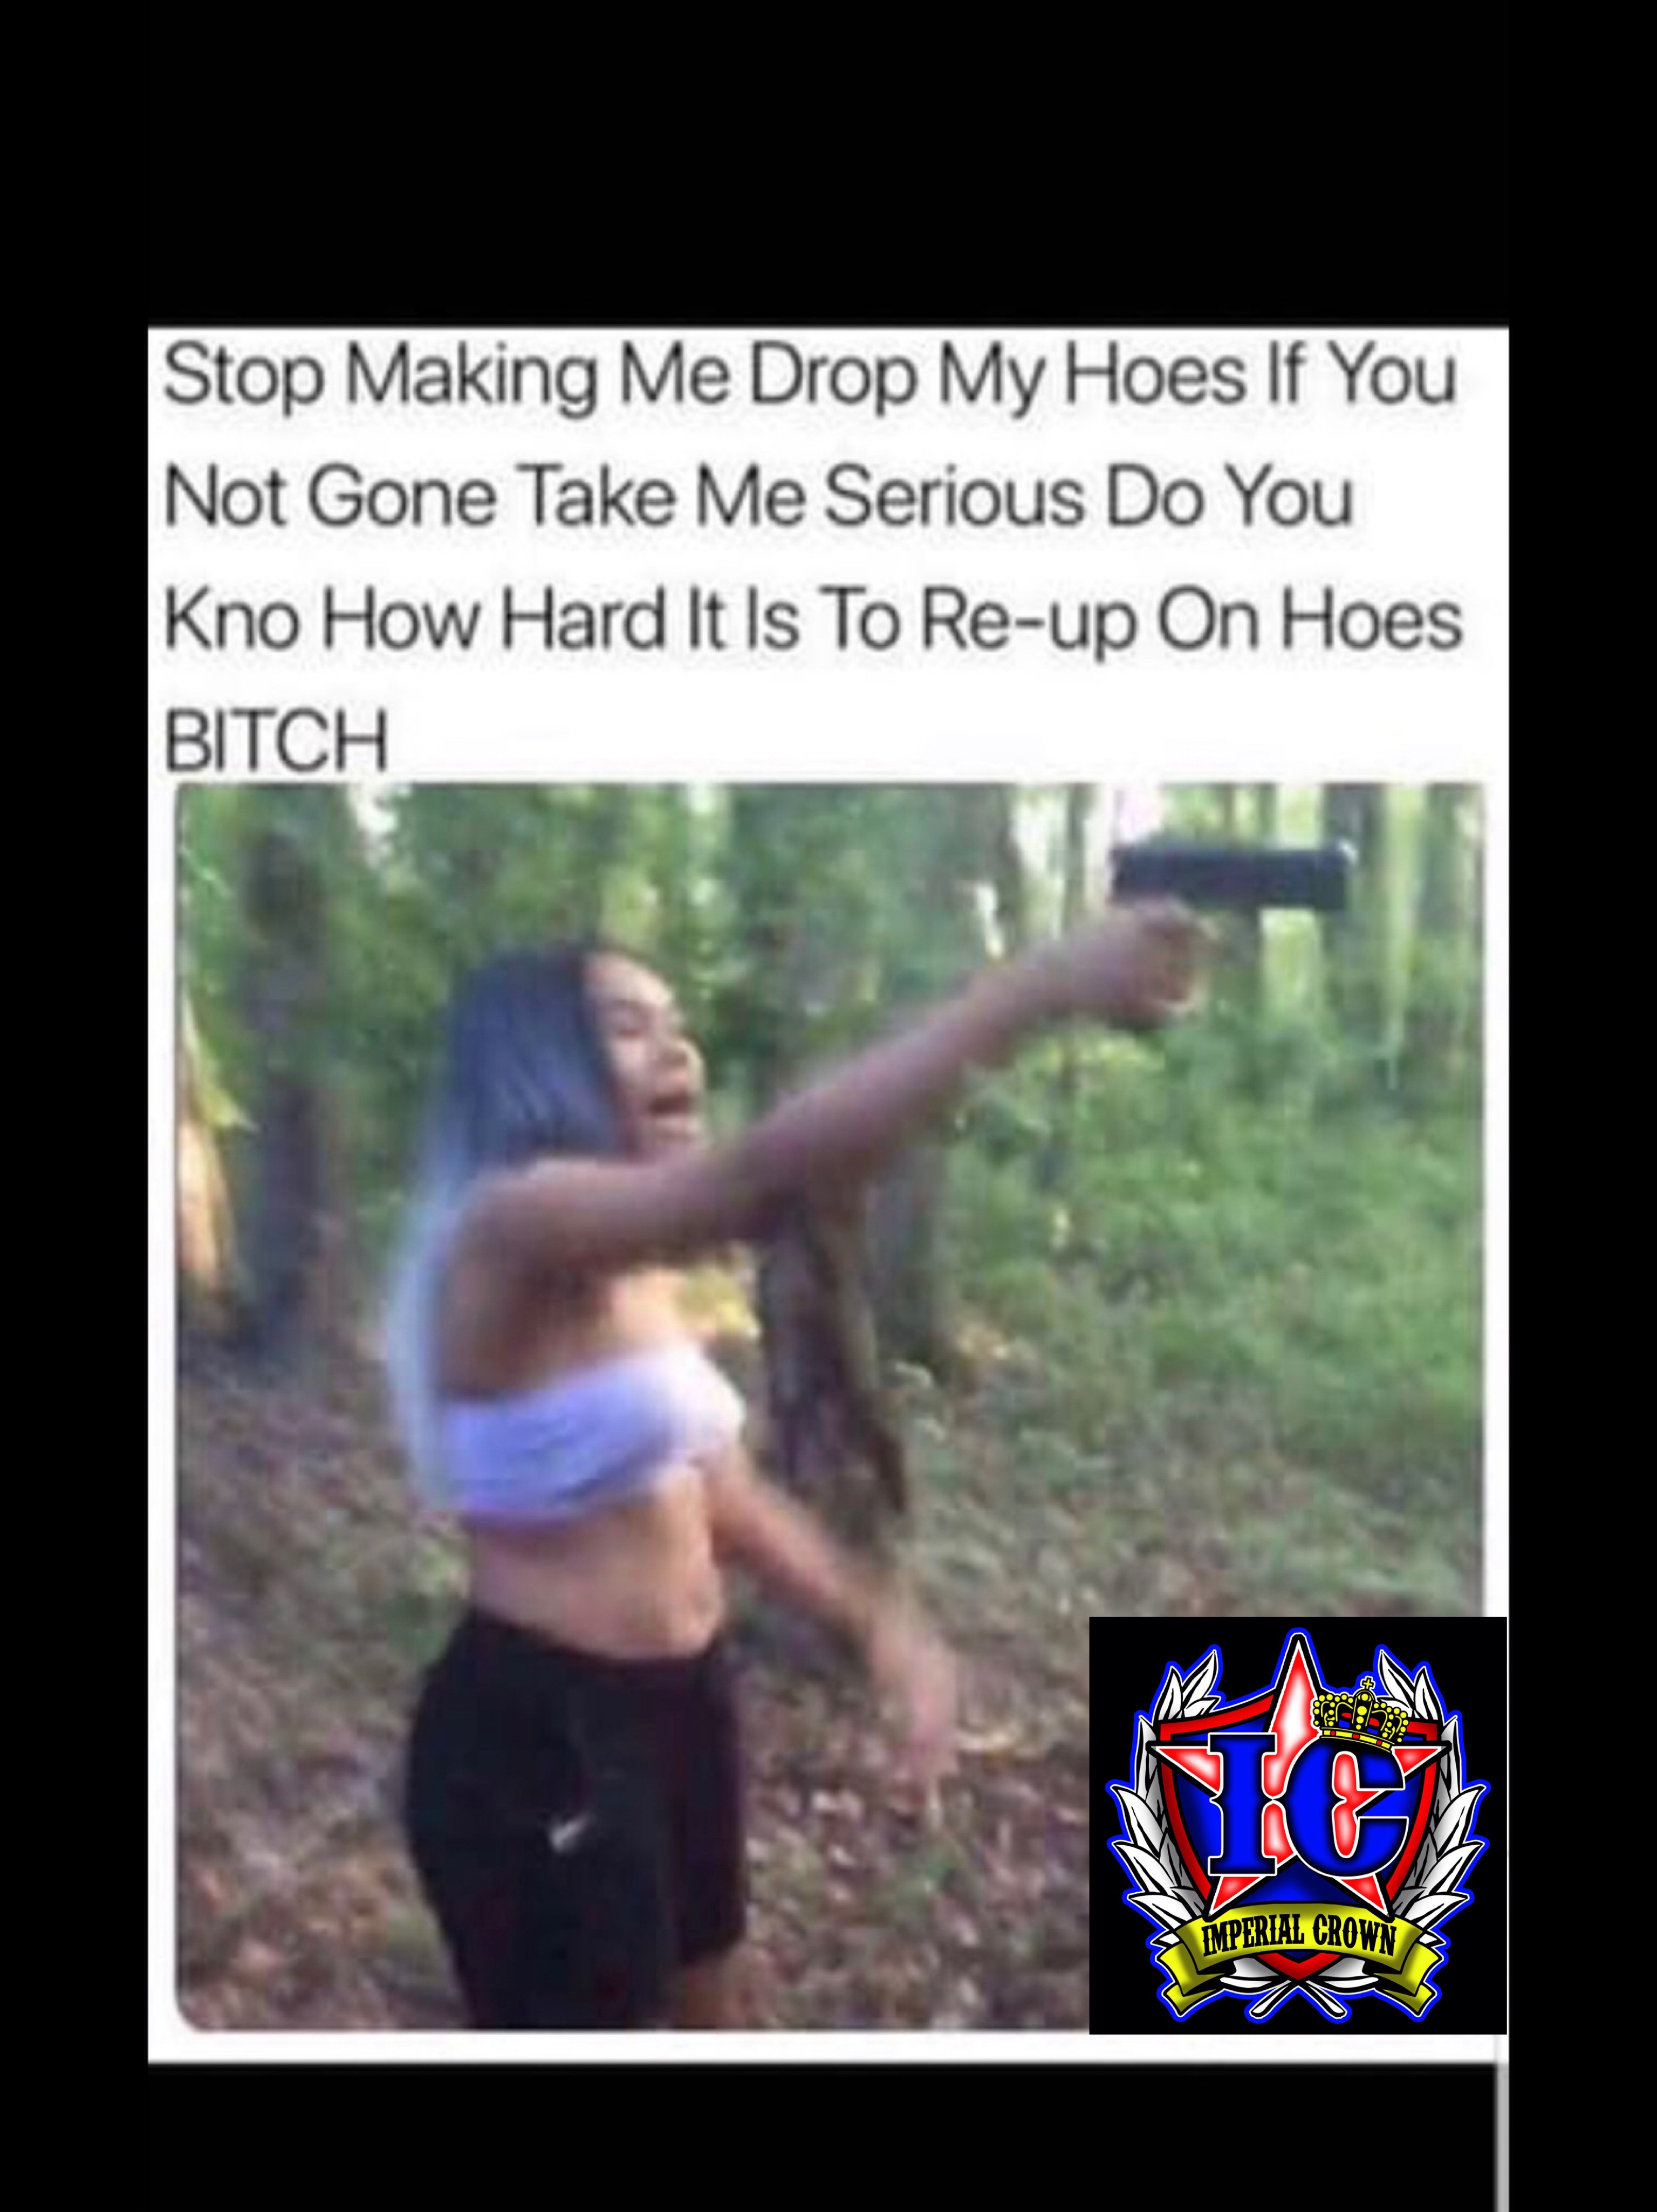 Stop making me drop my hoes if you not going take me serious